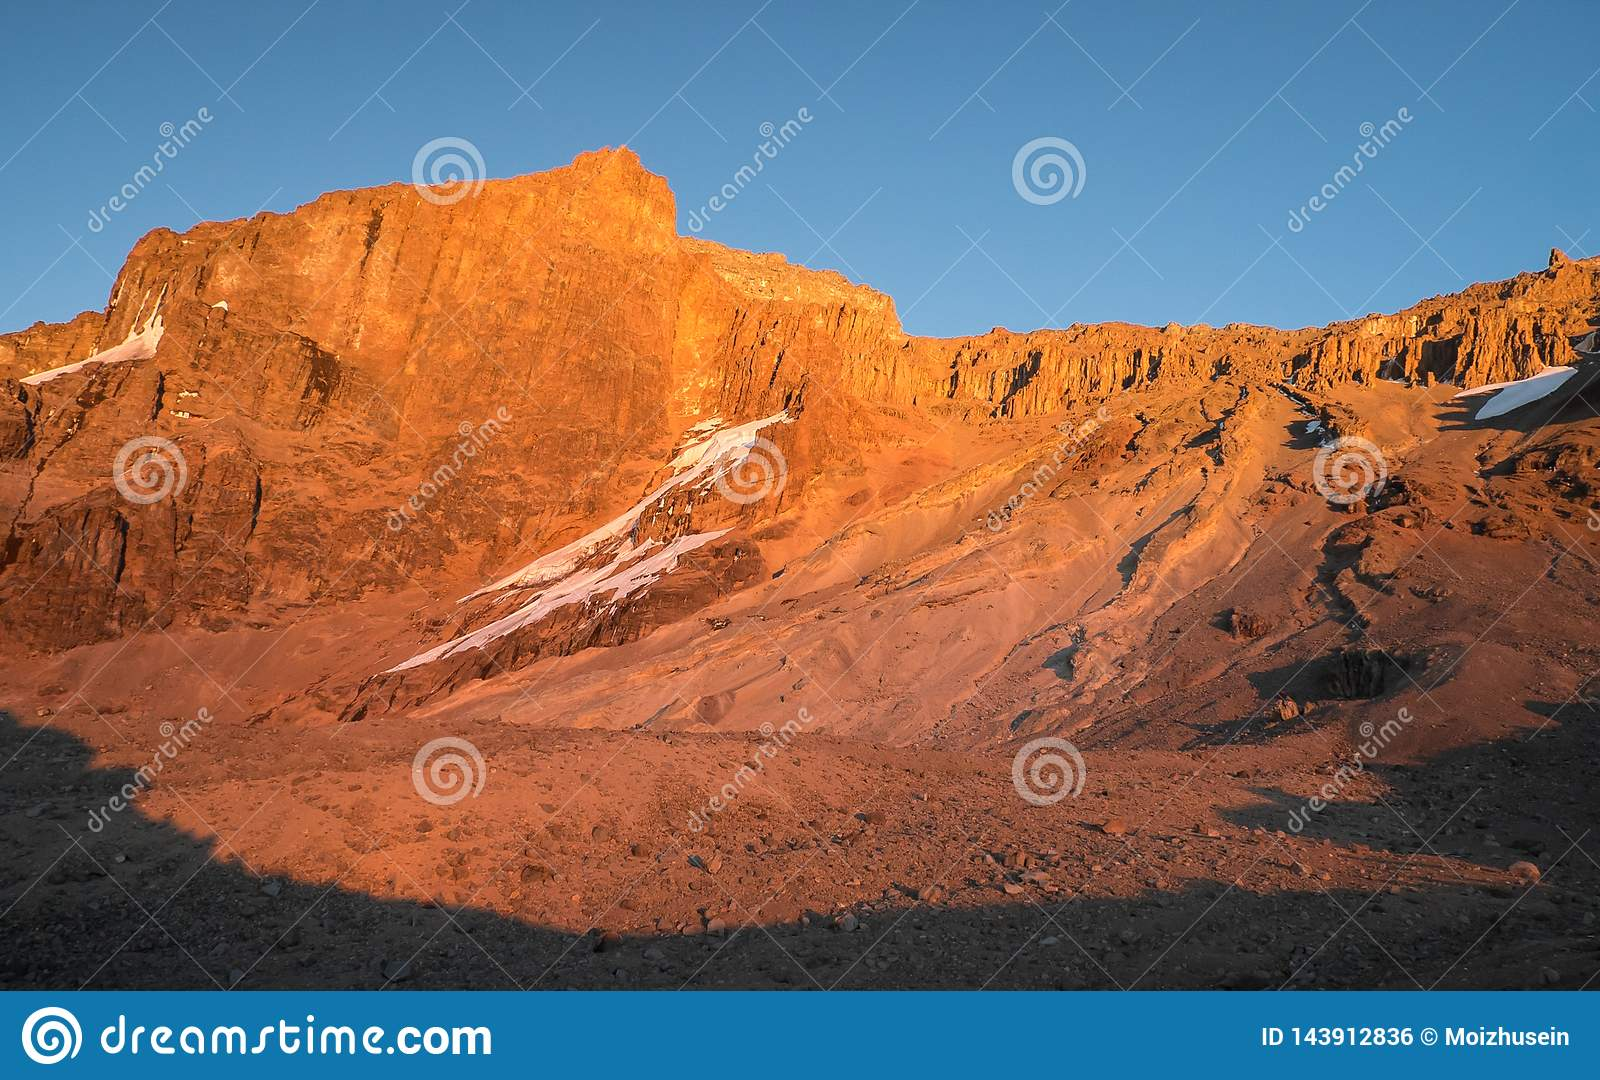 Mount Kilimanjaro - the highest mountain in Tanzania and Africa